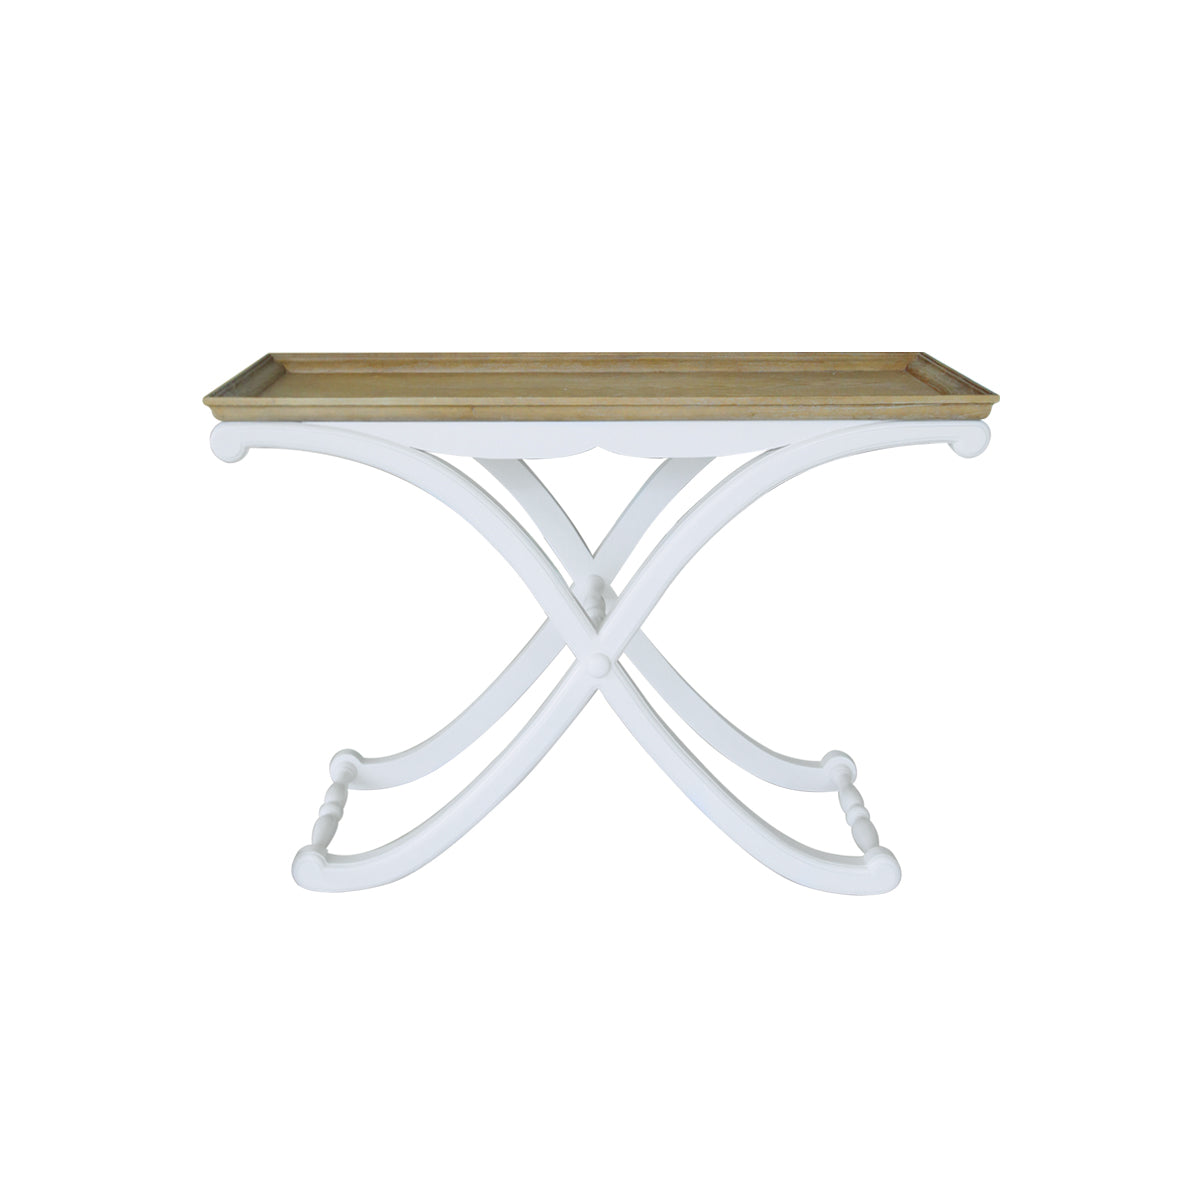 accent table curvy slim modern furniture jakarta palembang makassar